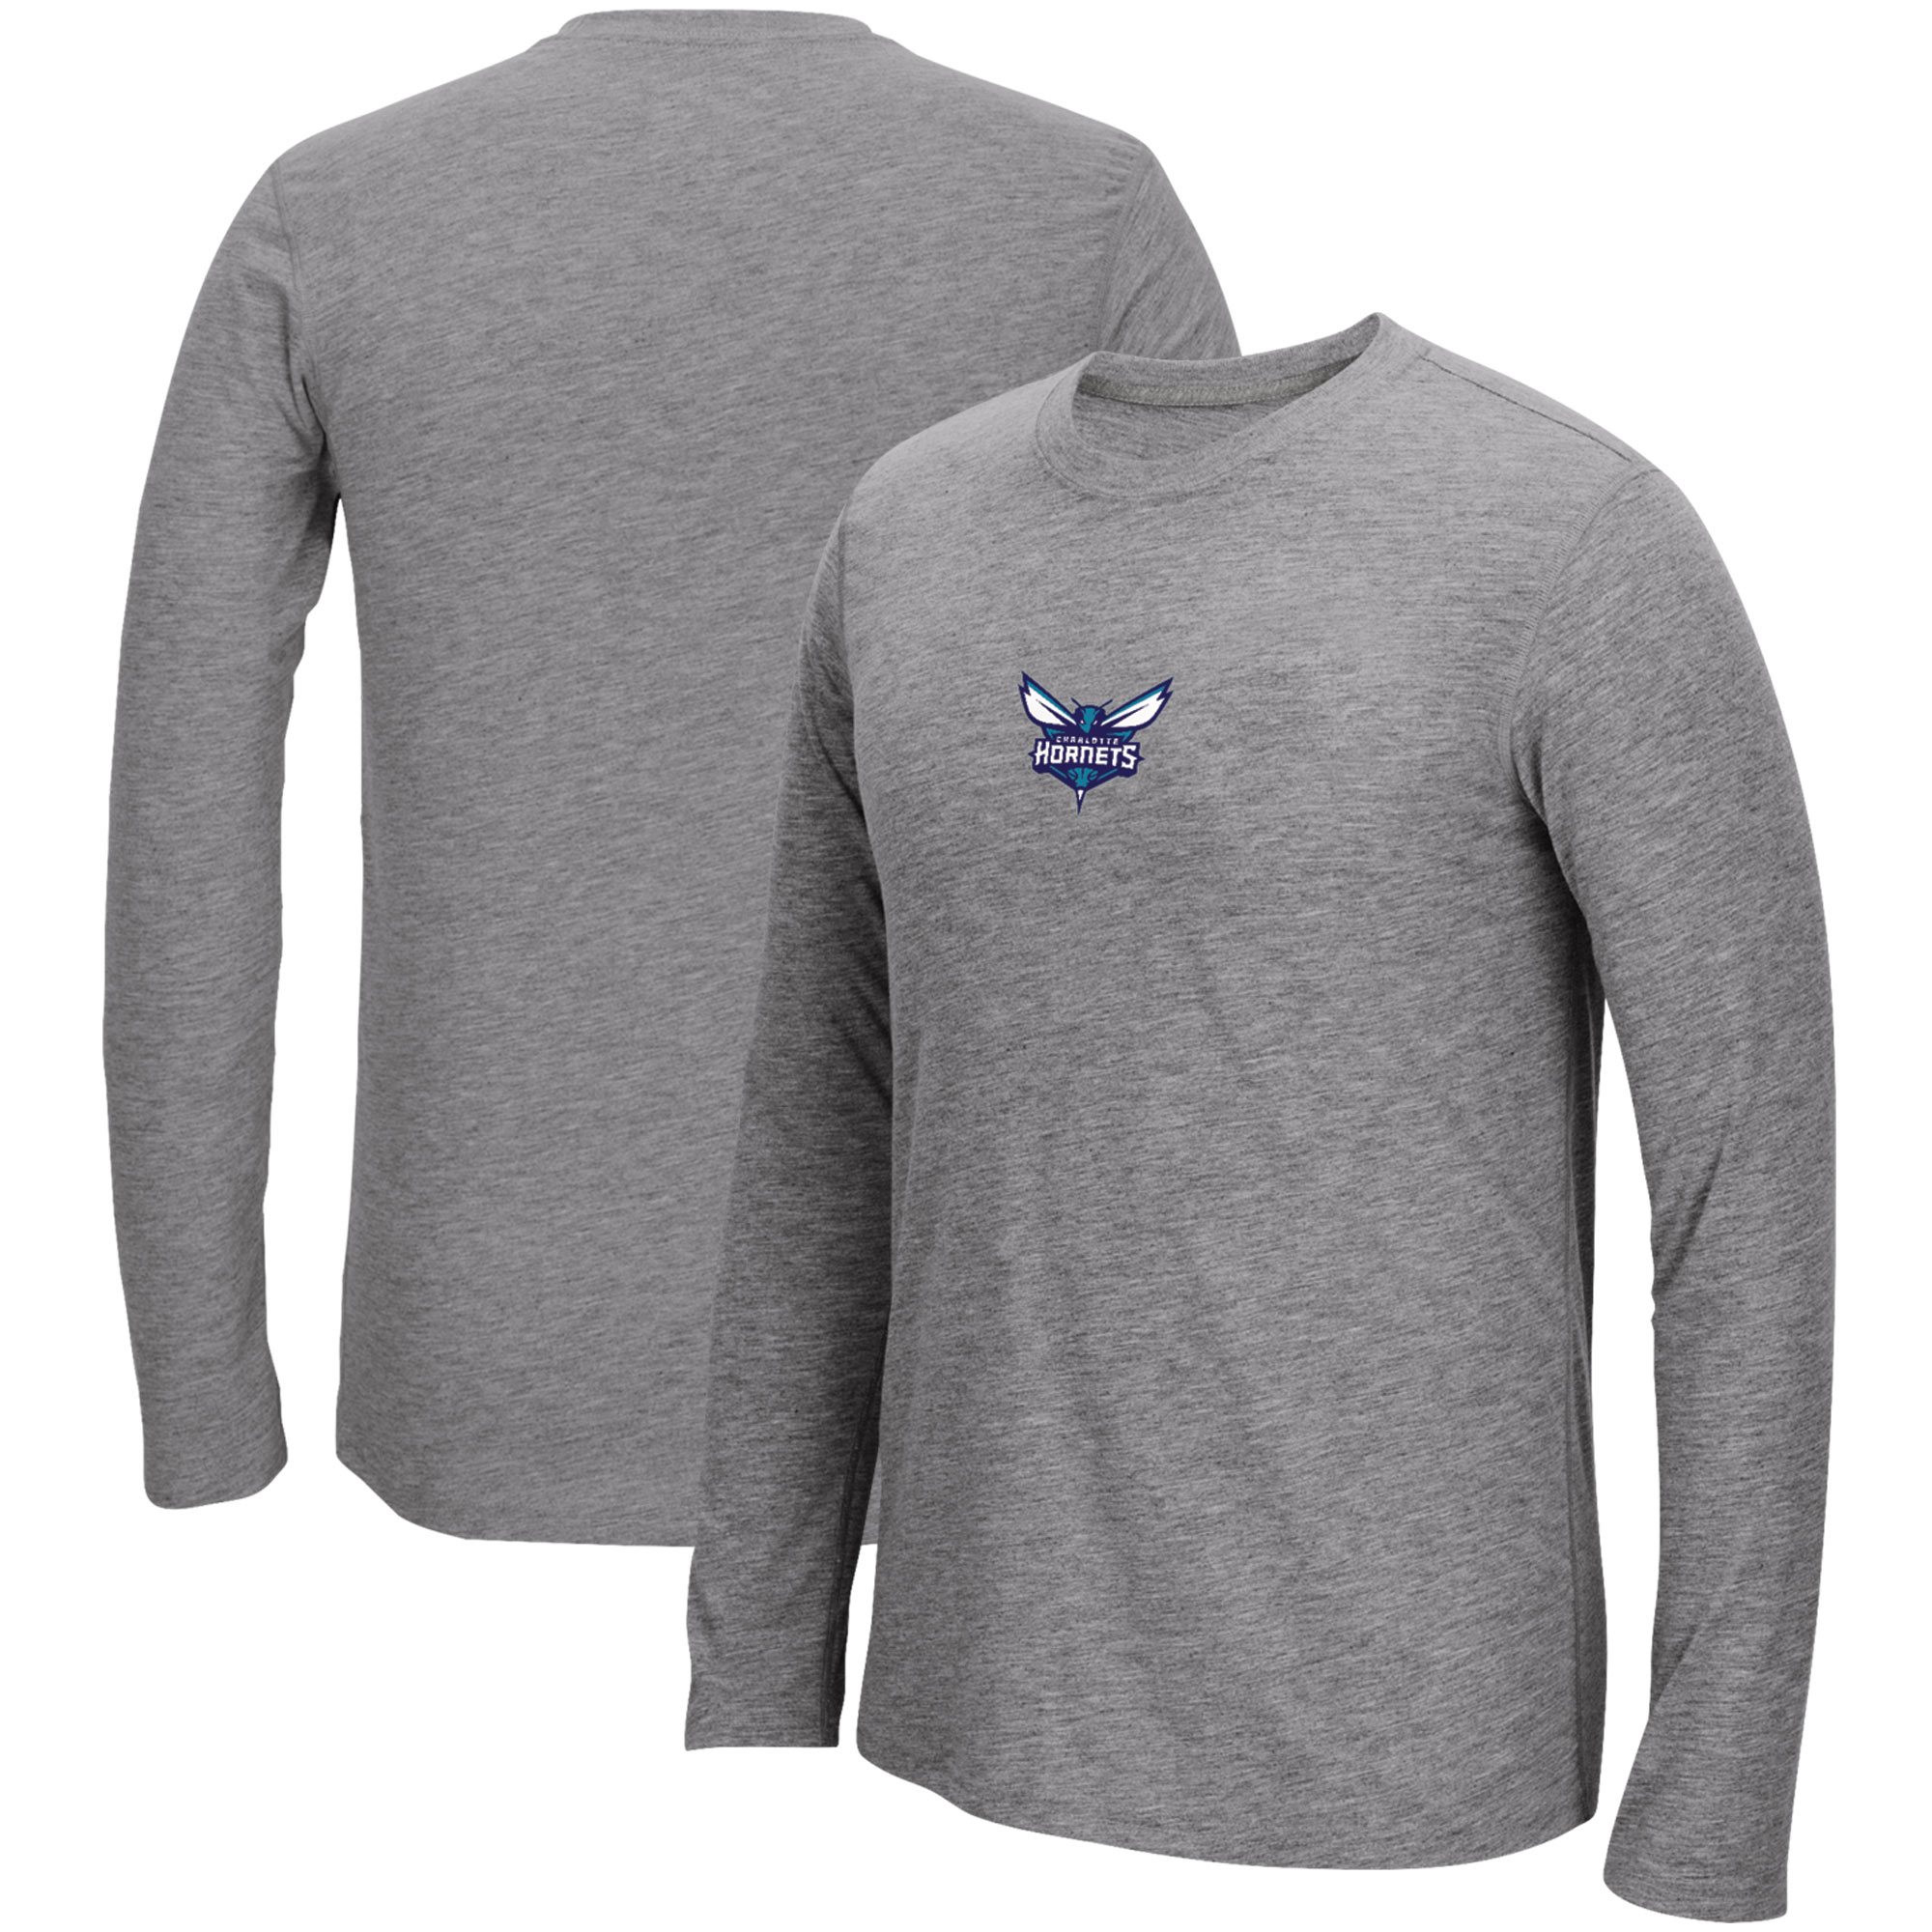 Charlotte Hornets adidas Pre-Game Ultimate climalite Long Sleeve T-Shirt - Heathered Gray